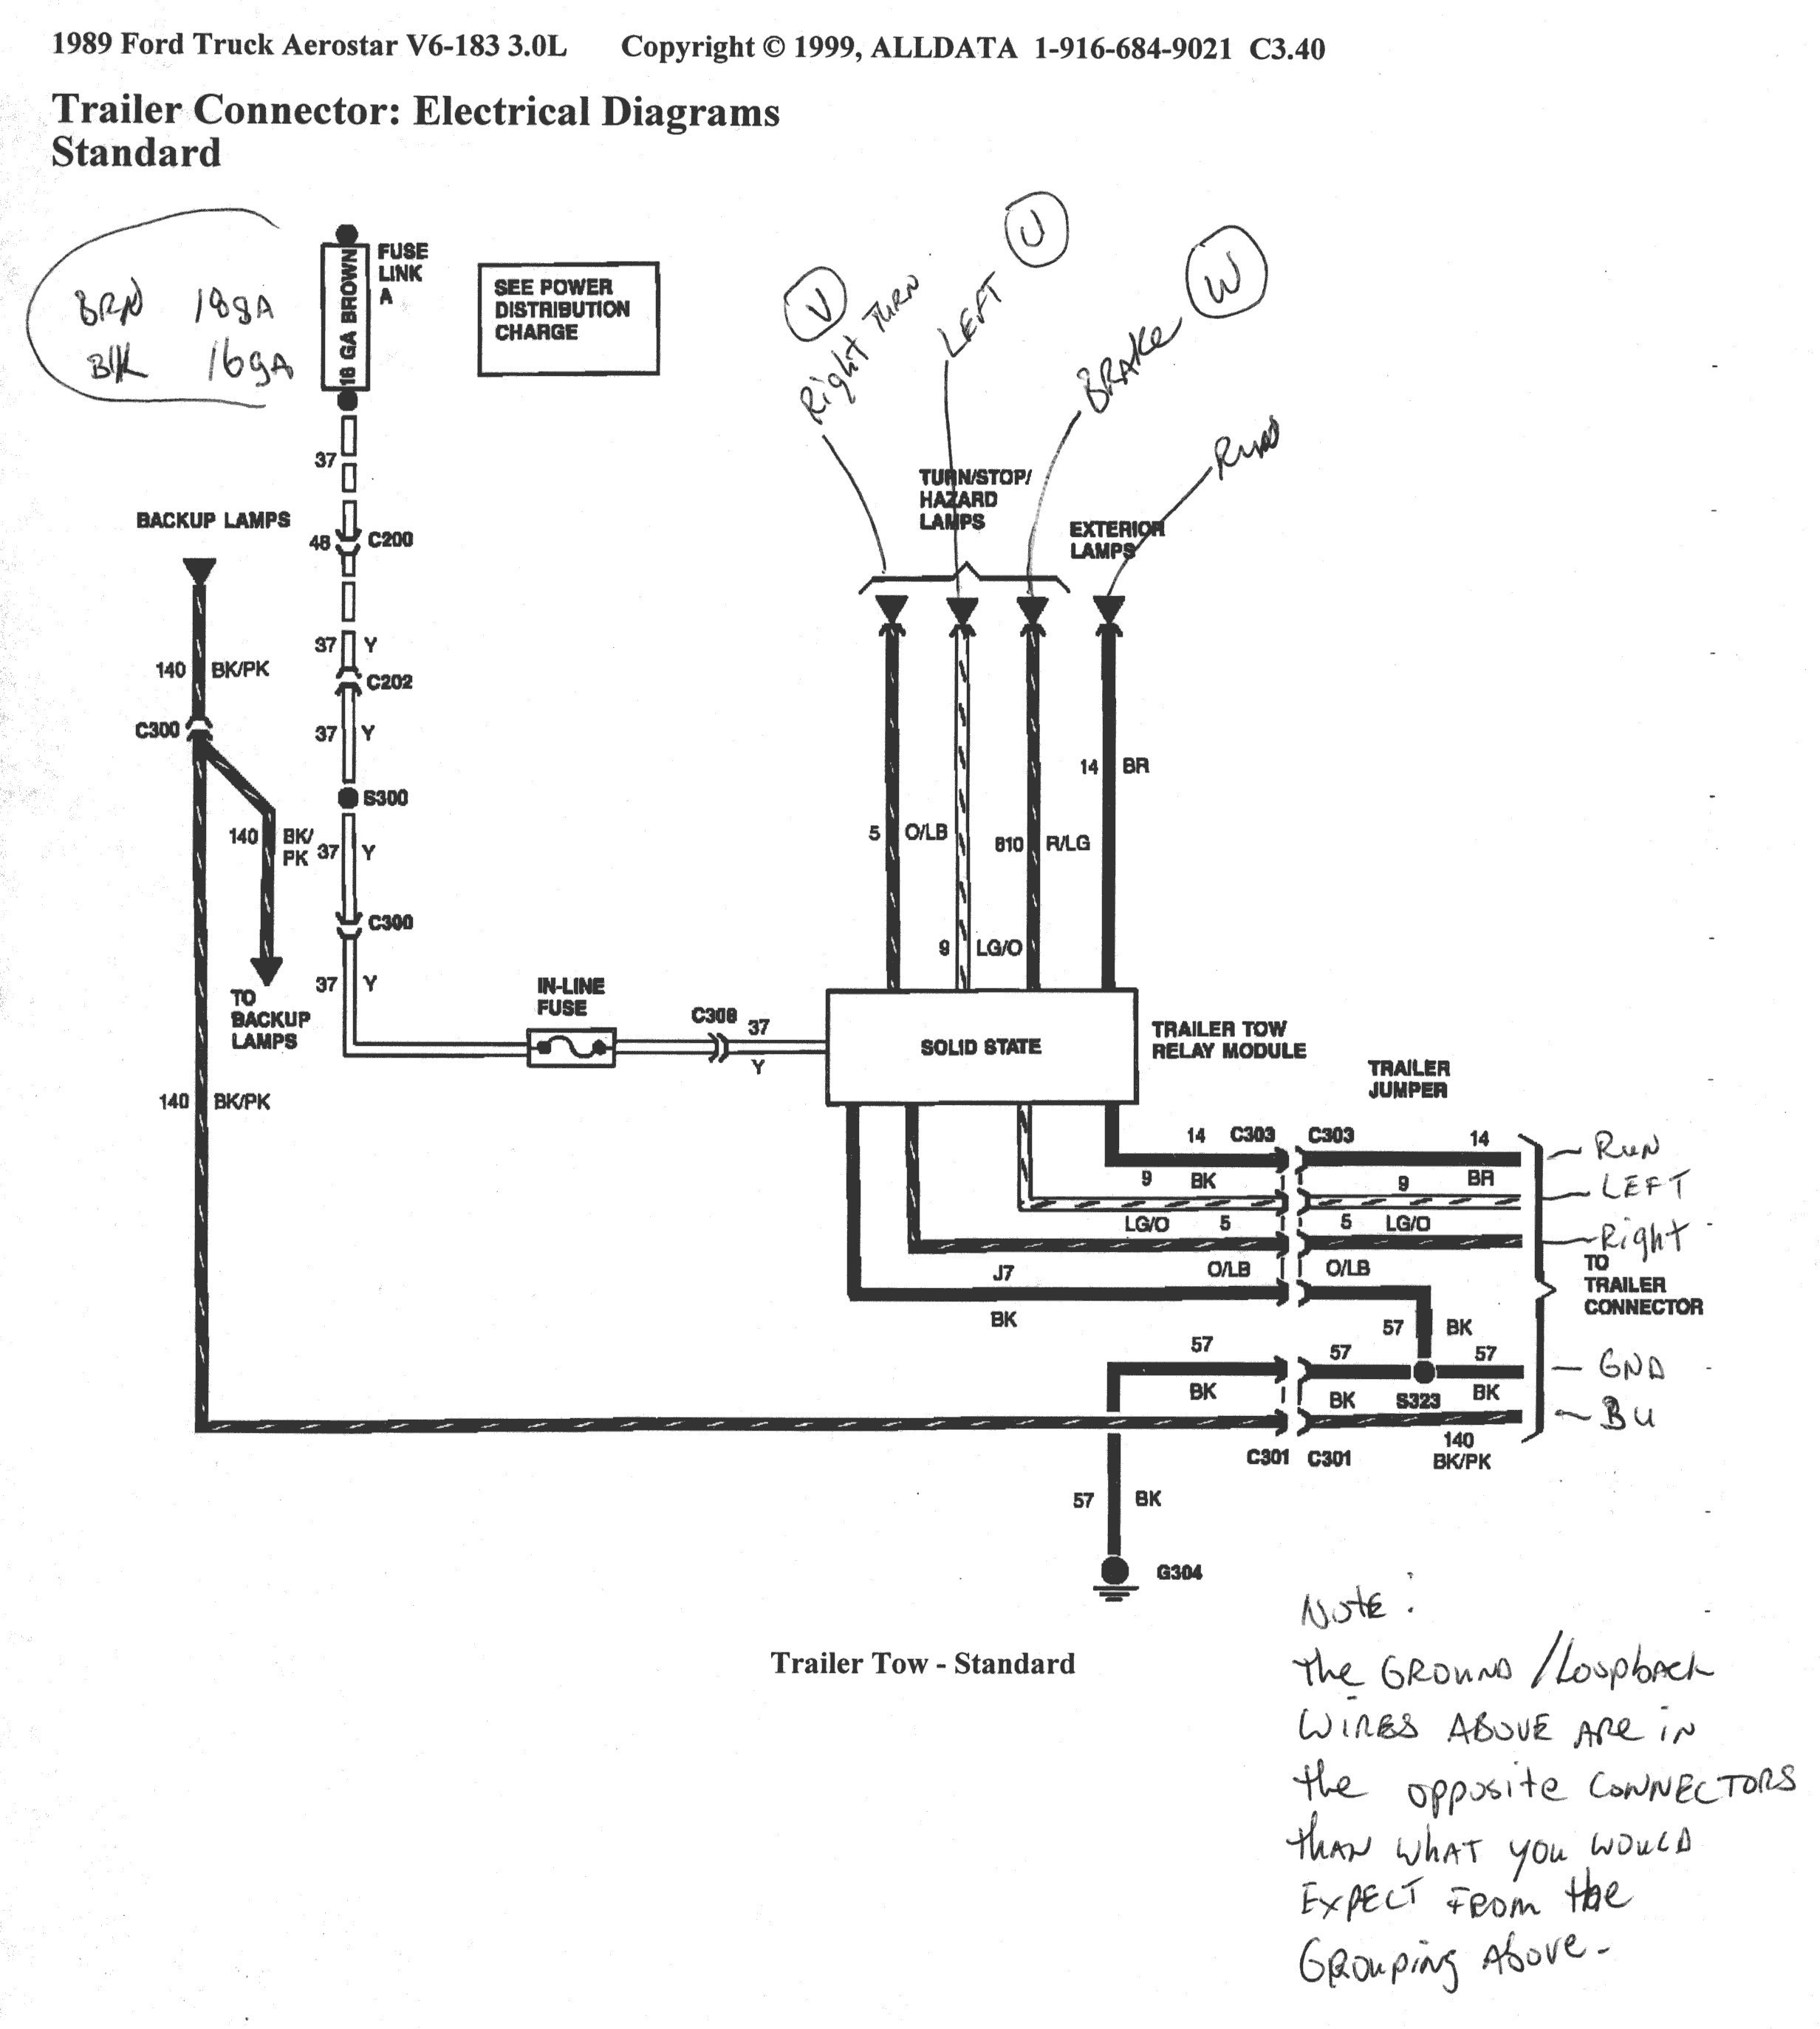 Ford F250 Trailer Plug Wiring Diagram from static-resources.imageservice.cloud